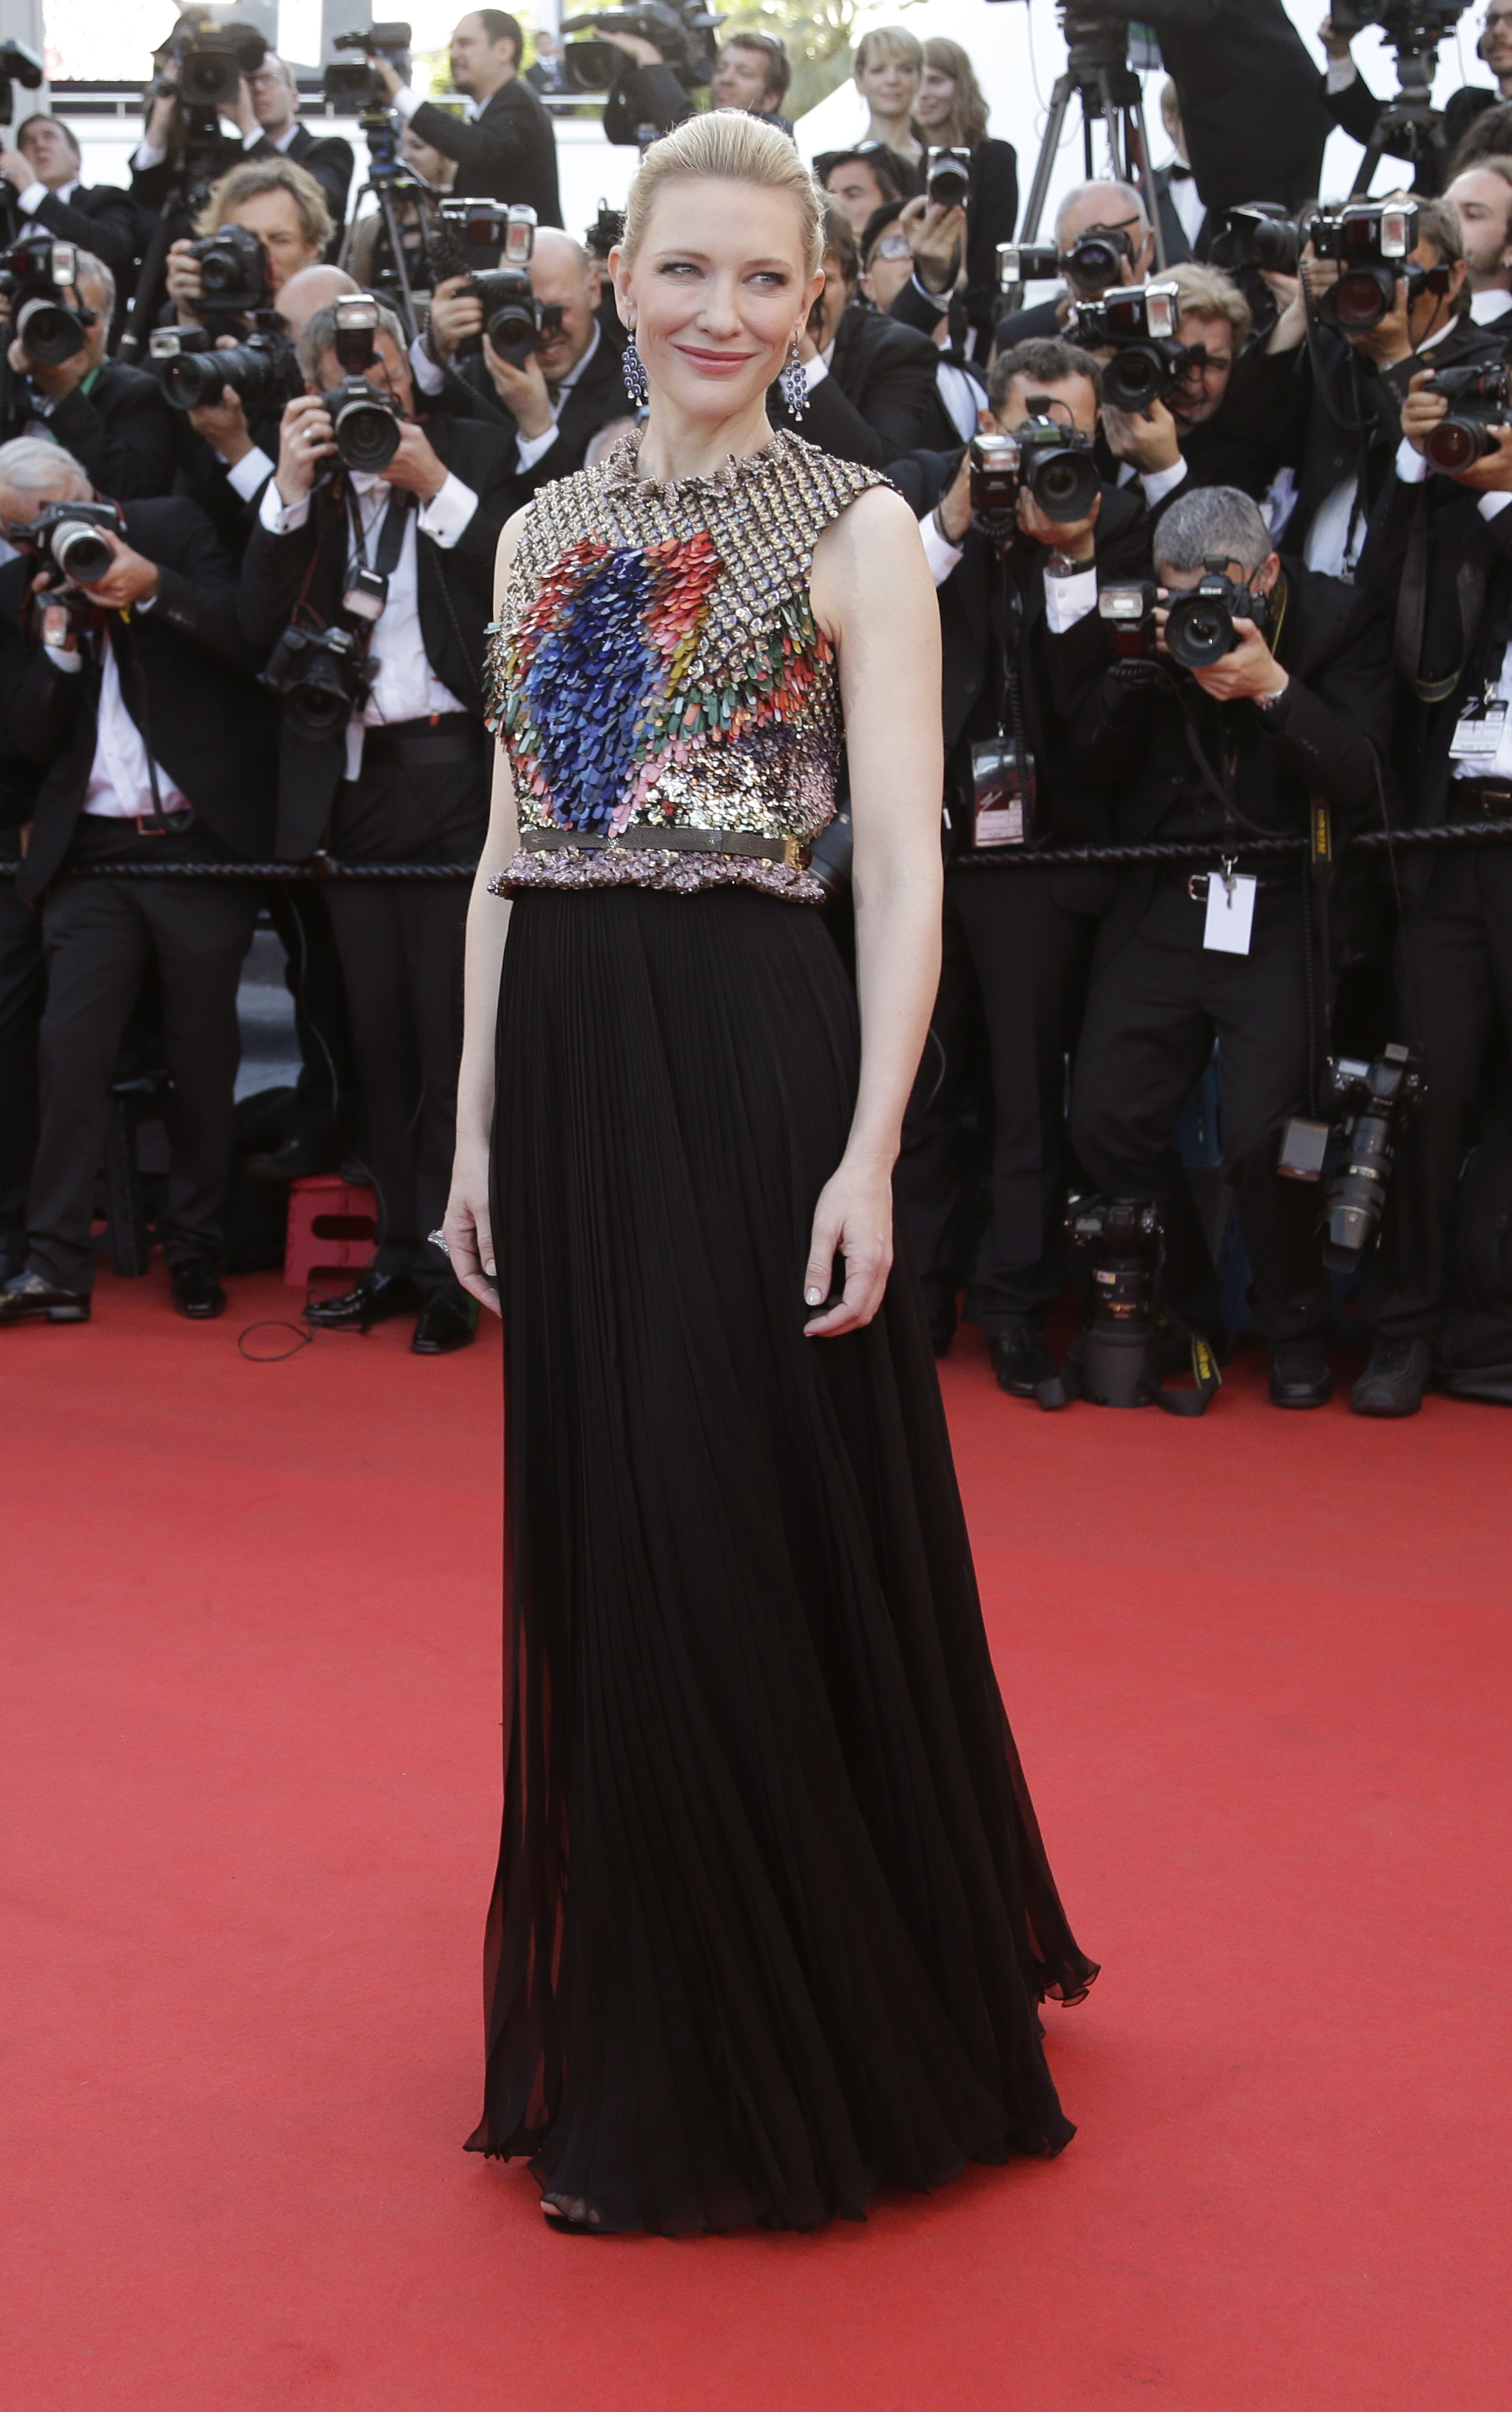 Actress Cate Blanchett poses for photographers as she arrives for the screening of How to Train Your Dragon 2 at the 67th international film festival, Cannes, southern France, Friday, May 16, 2014. (AP Photo/Thibault Camus)